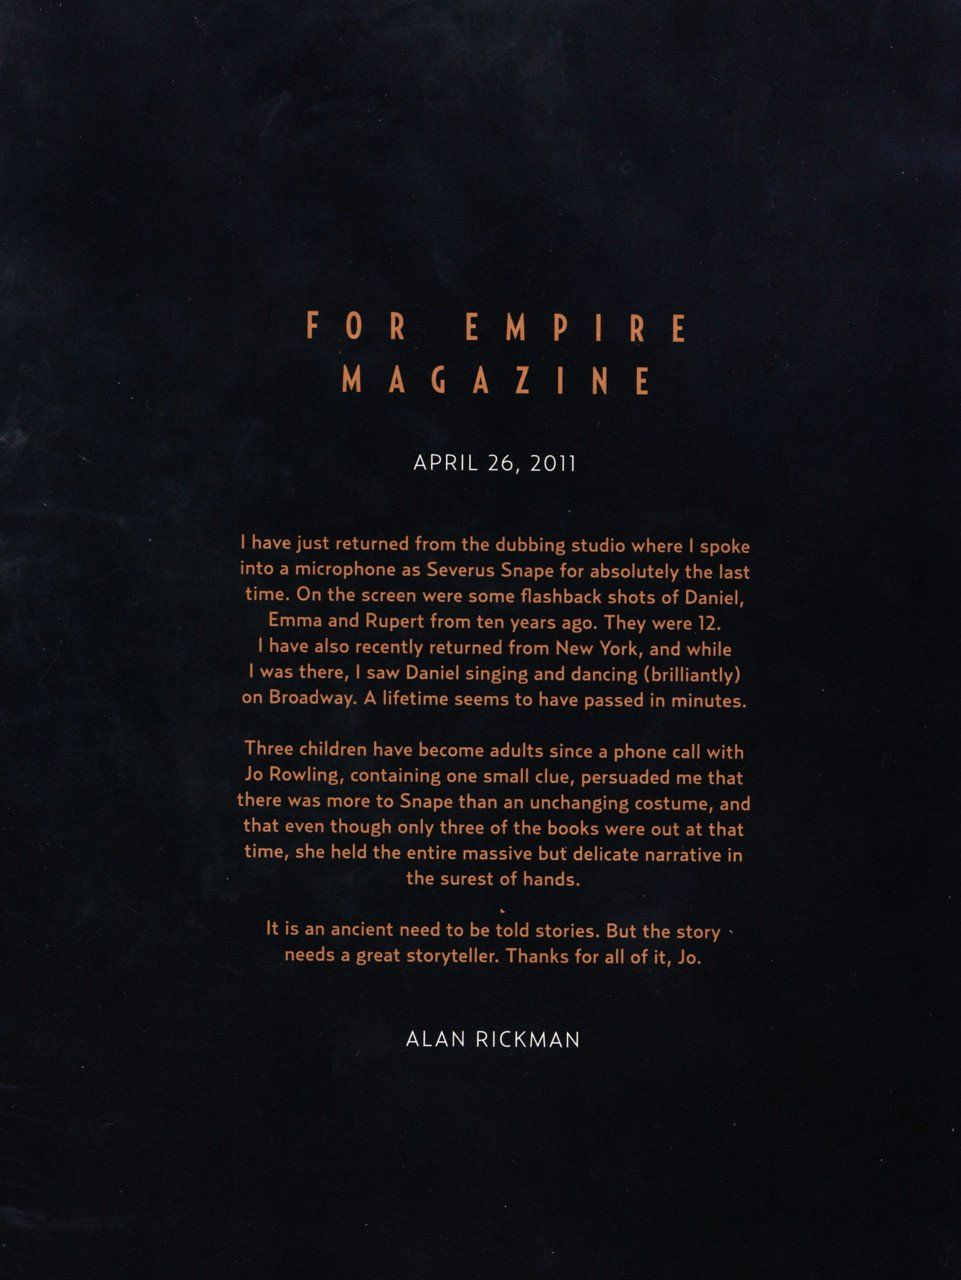 Alan Rickman wrote a heartwarming goodbye letter to Harry Potter